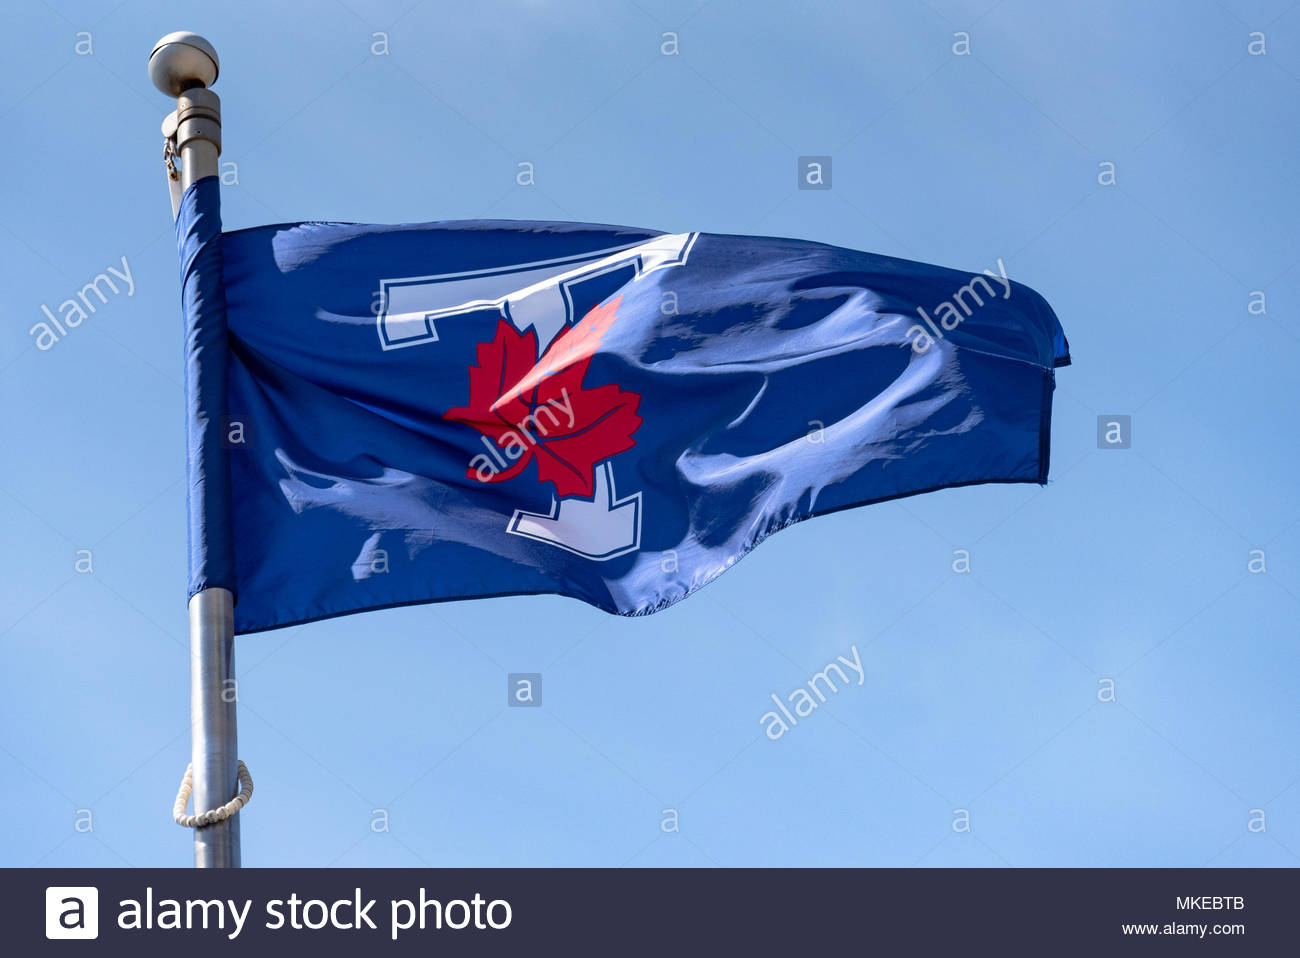 University of Toronto (U of T) Varsity Blues Flag waving on a blue clear sky. The Varsity Blues is a intercollegiate sports program in the Canadian ci - Stock Image